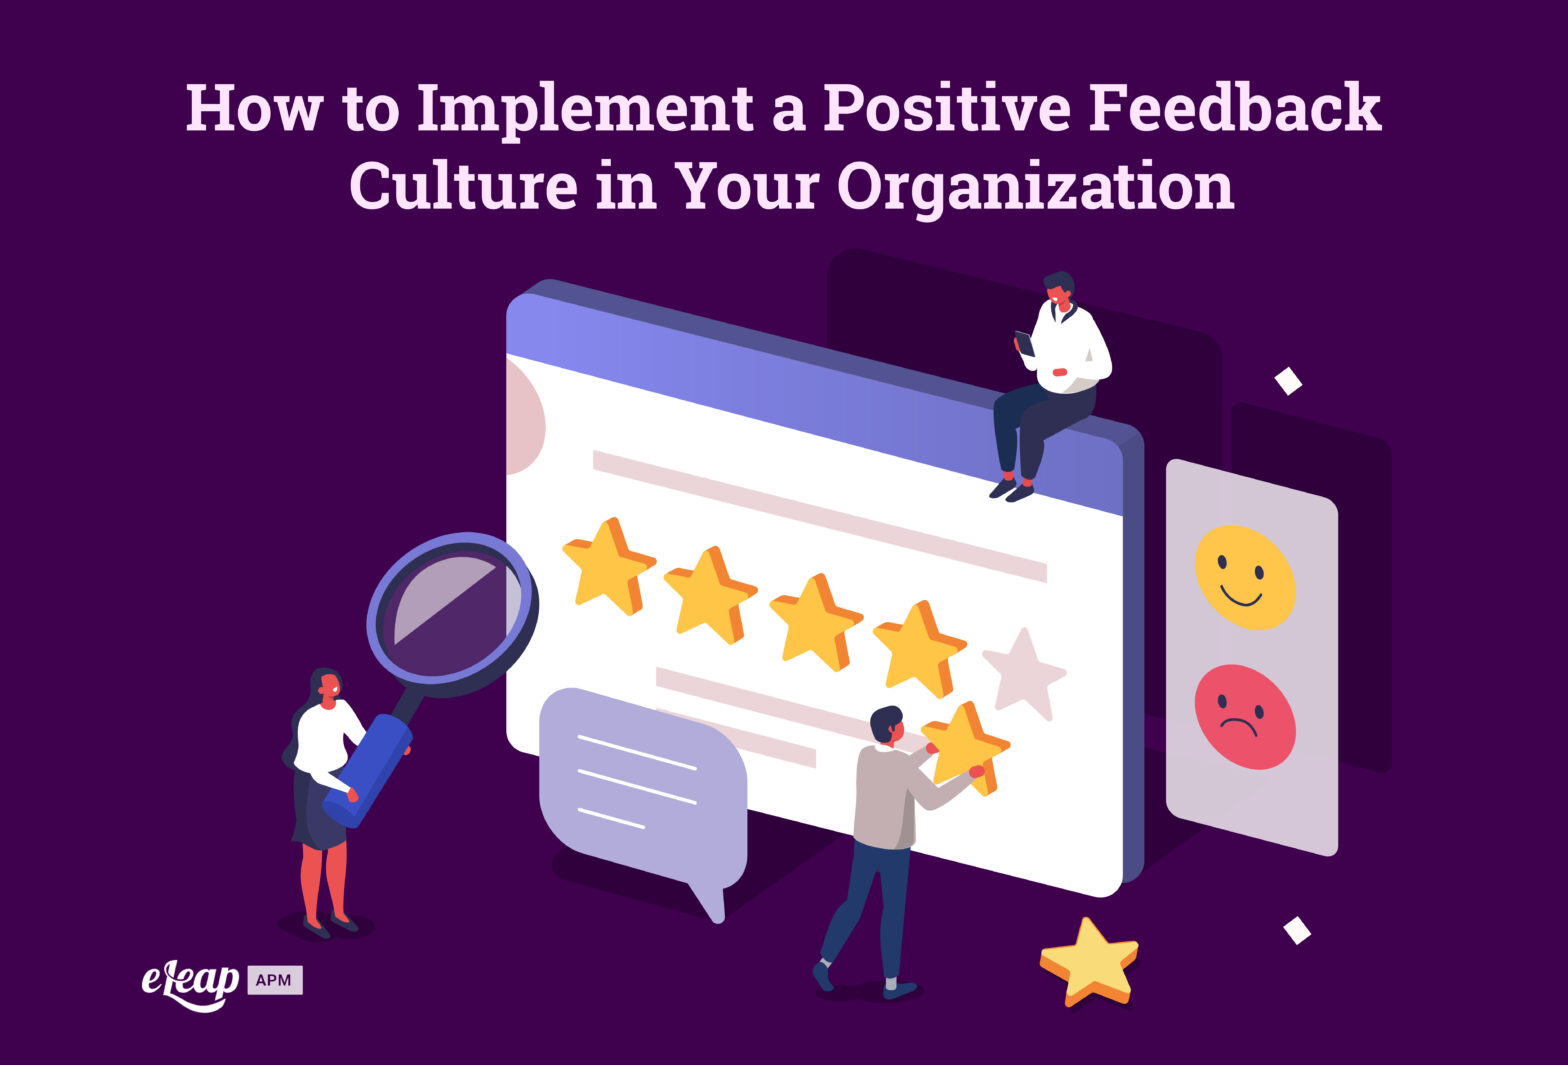 How to Implement a Positive Feedback Culture in Your Organization